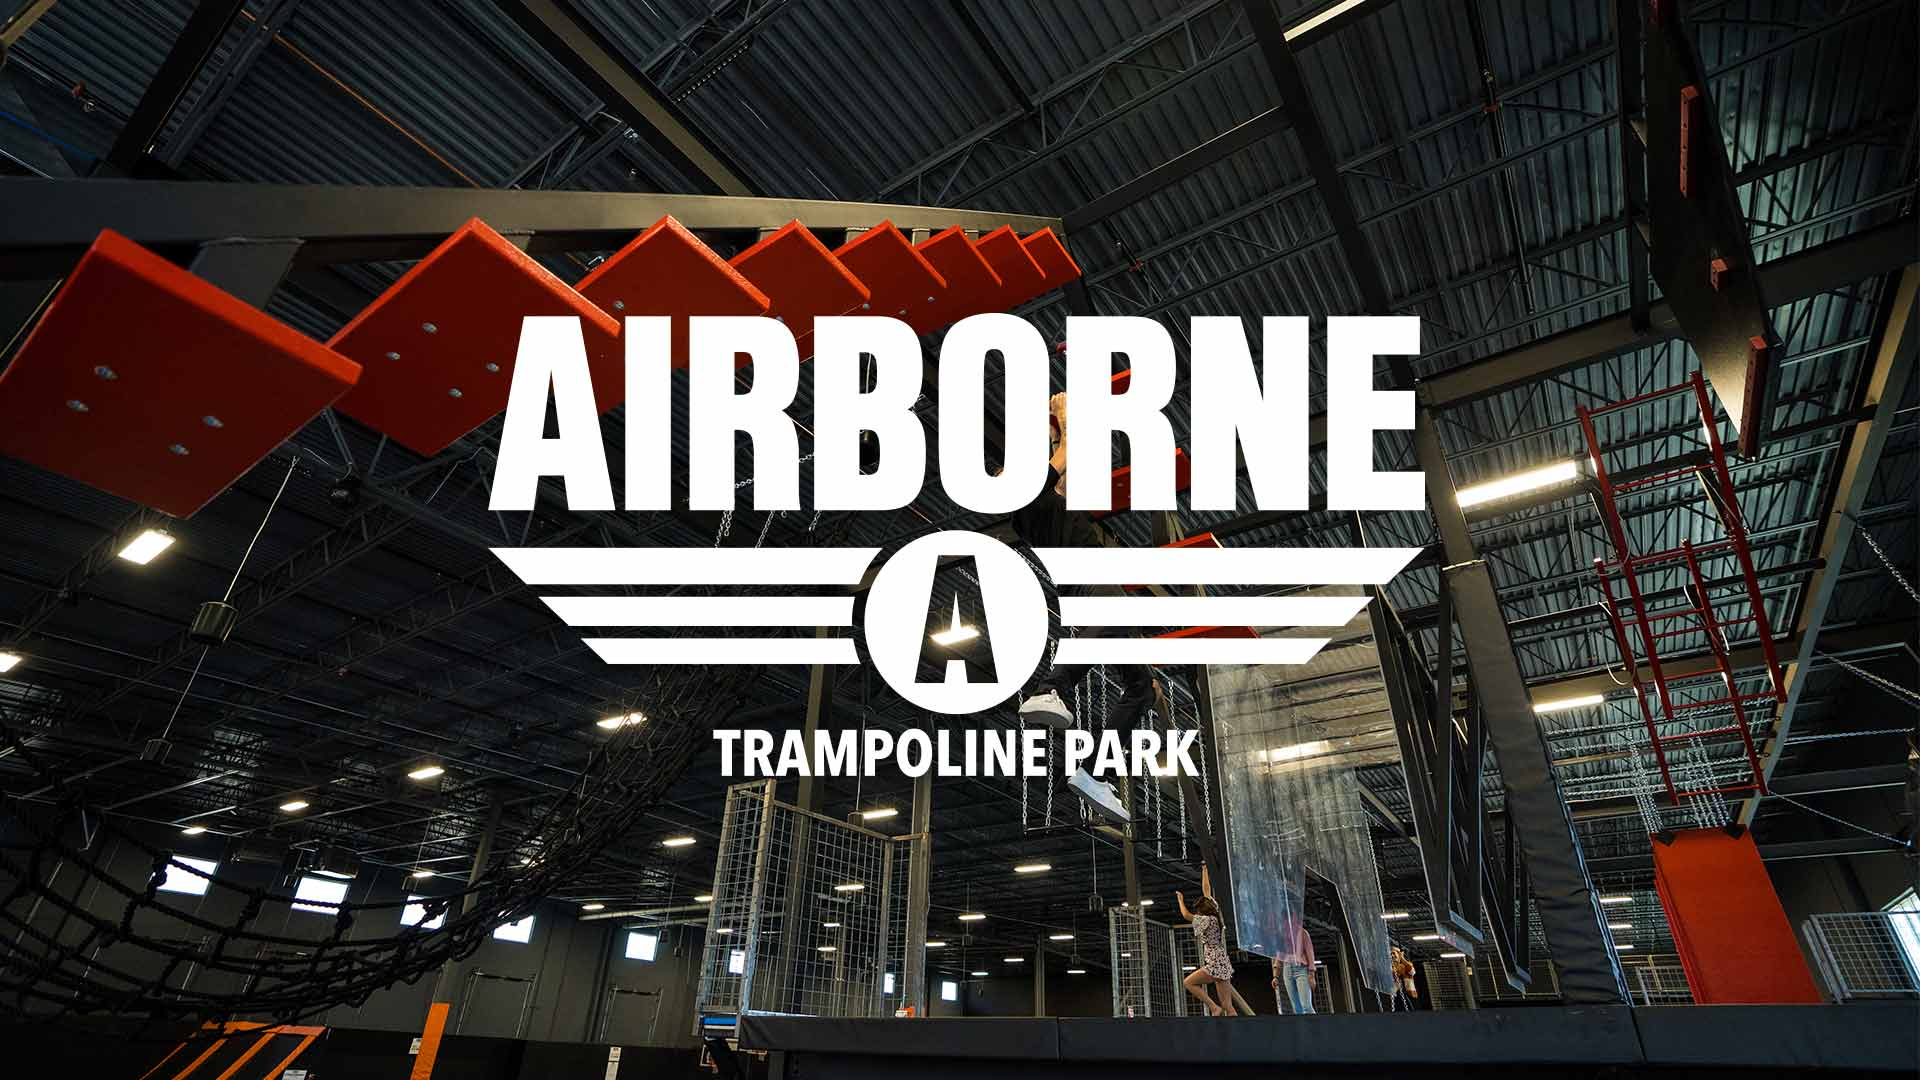 Airborne Trampoline Park - Experience high-flying fun in one of our state of the art facilities. Airborne is fully equipped with a ninja-warrior obstacle course, trapeze, rock climbing wall, cliff jump, Olympic trampolines and of course, wall-to-wall trampolines. Party rooms and the full facility are available for bookings.Learn more at Airbornesports.com